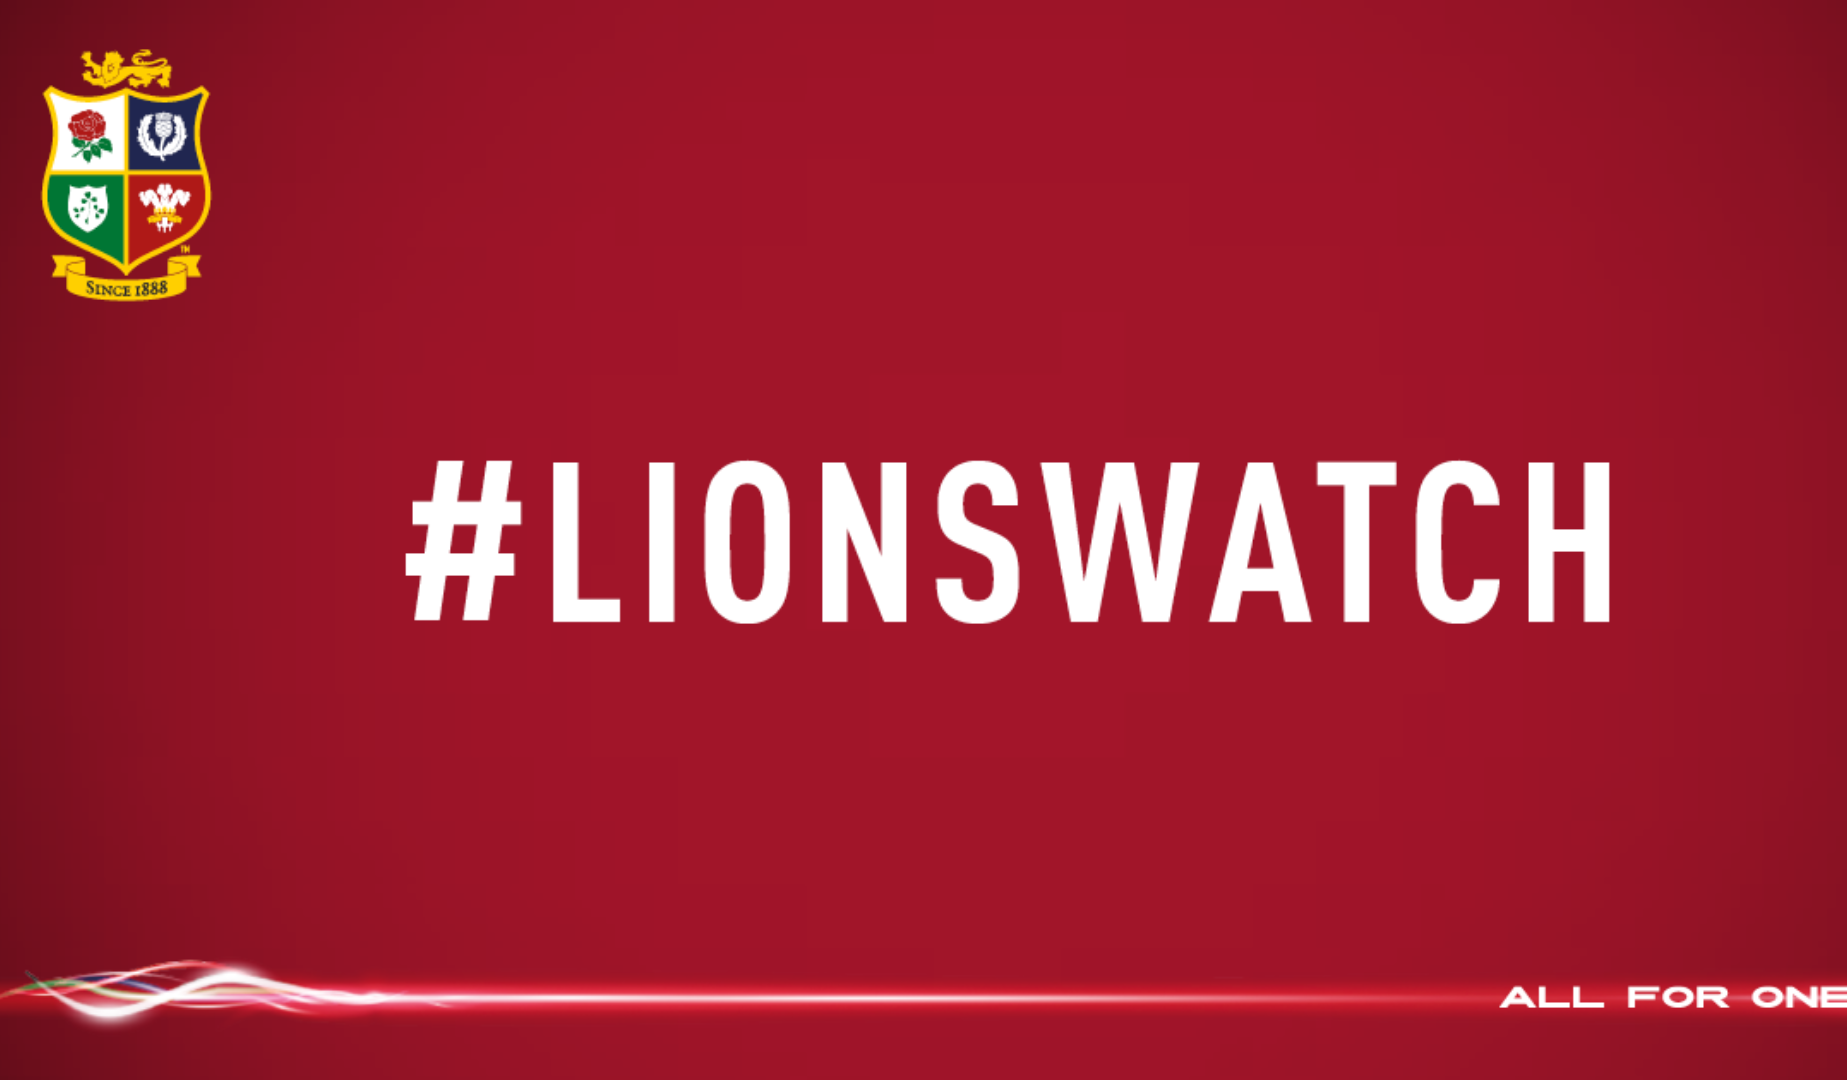 #LionsWatch – have your say